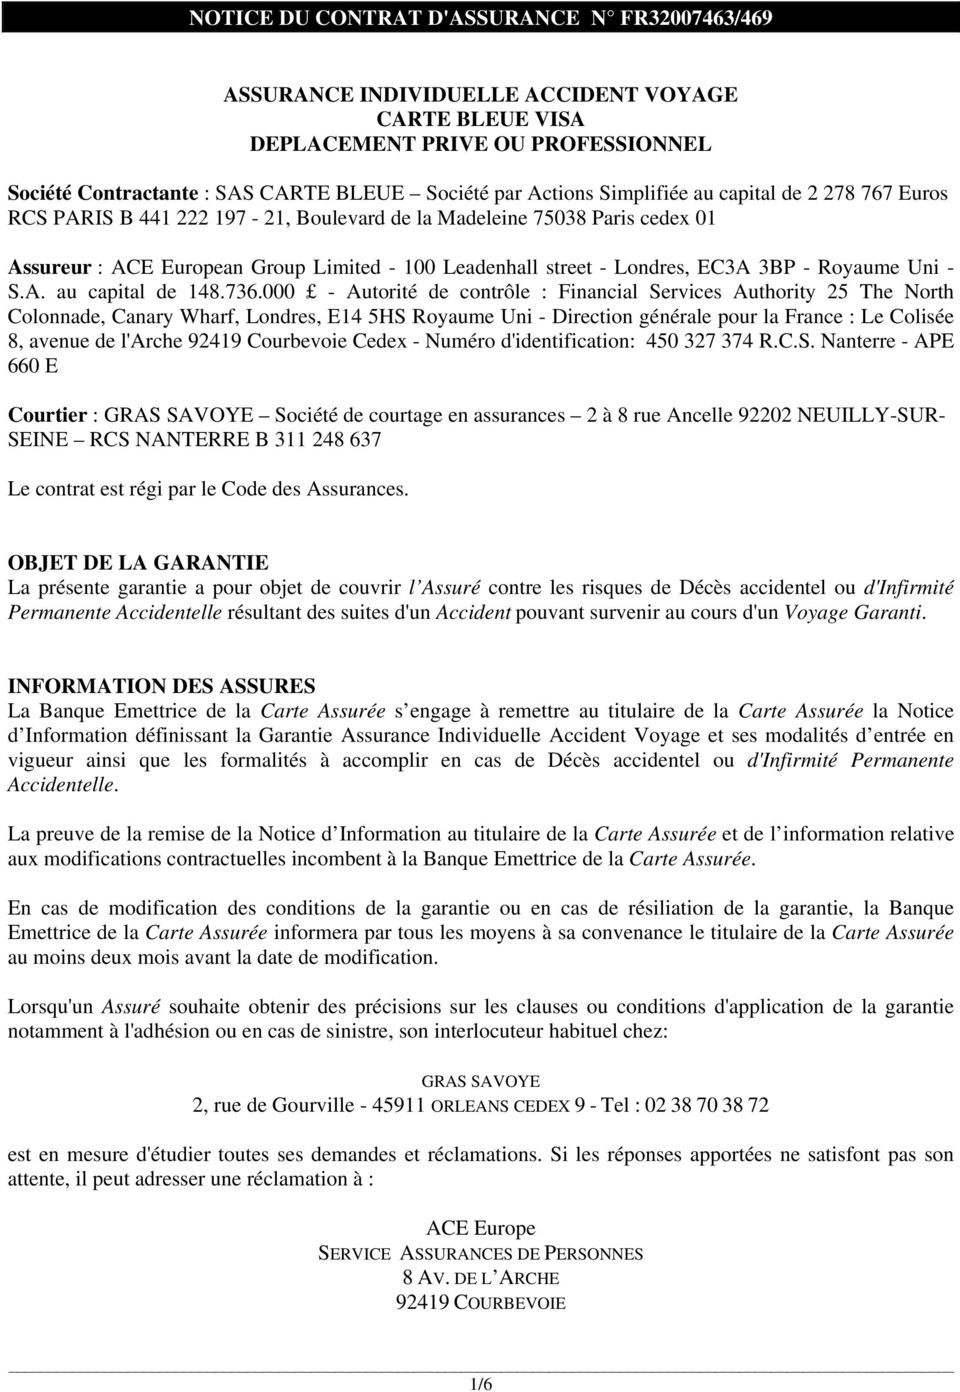 Royaume Uni - S.A. au capital de 148.736.